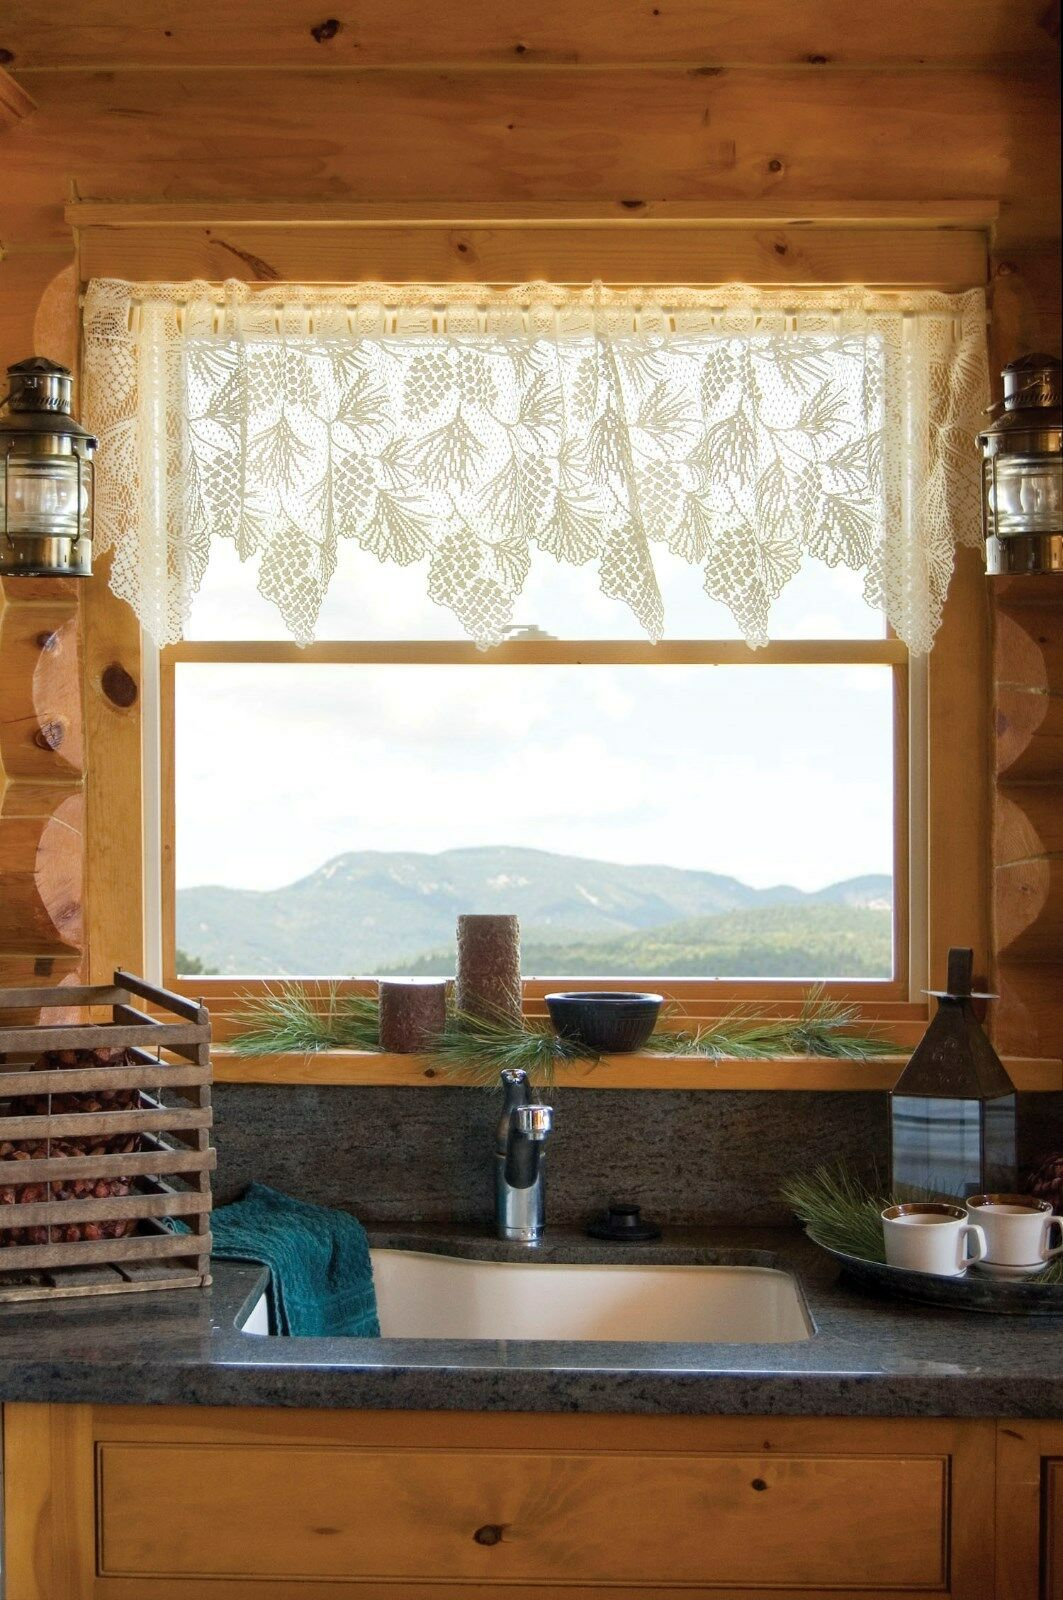 Woodland Pinecone White Lace Window Valance By Heritage Lace 0734573045532 For Sale Online